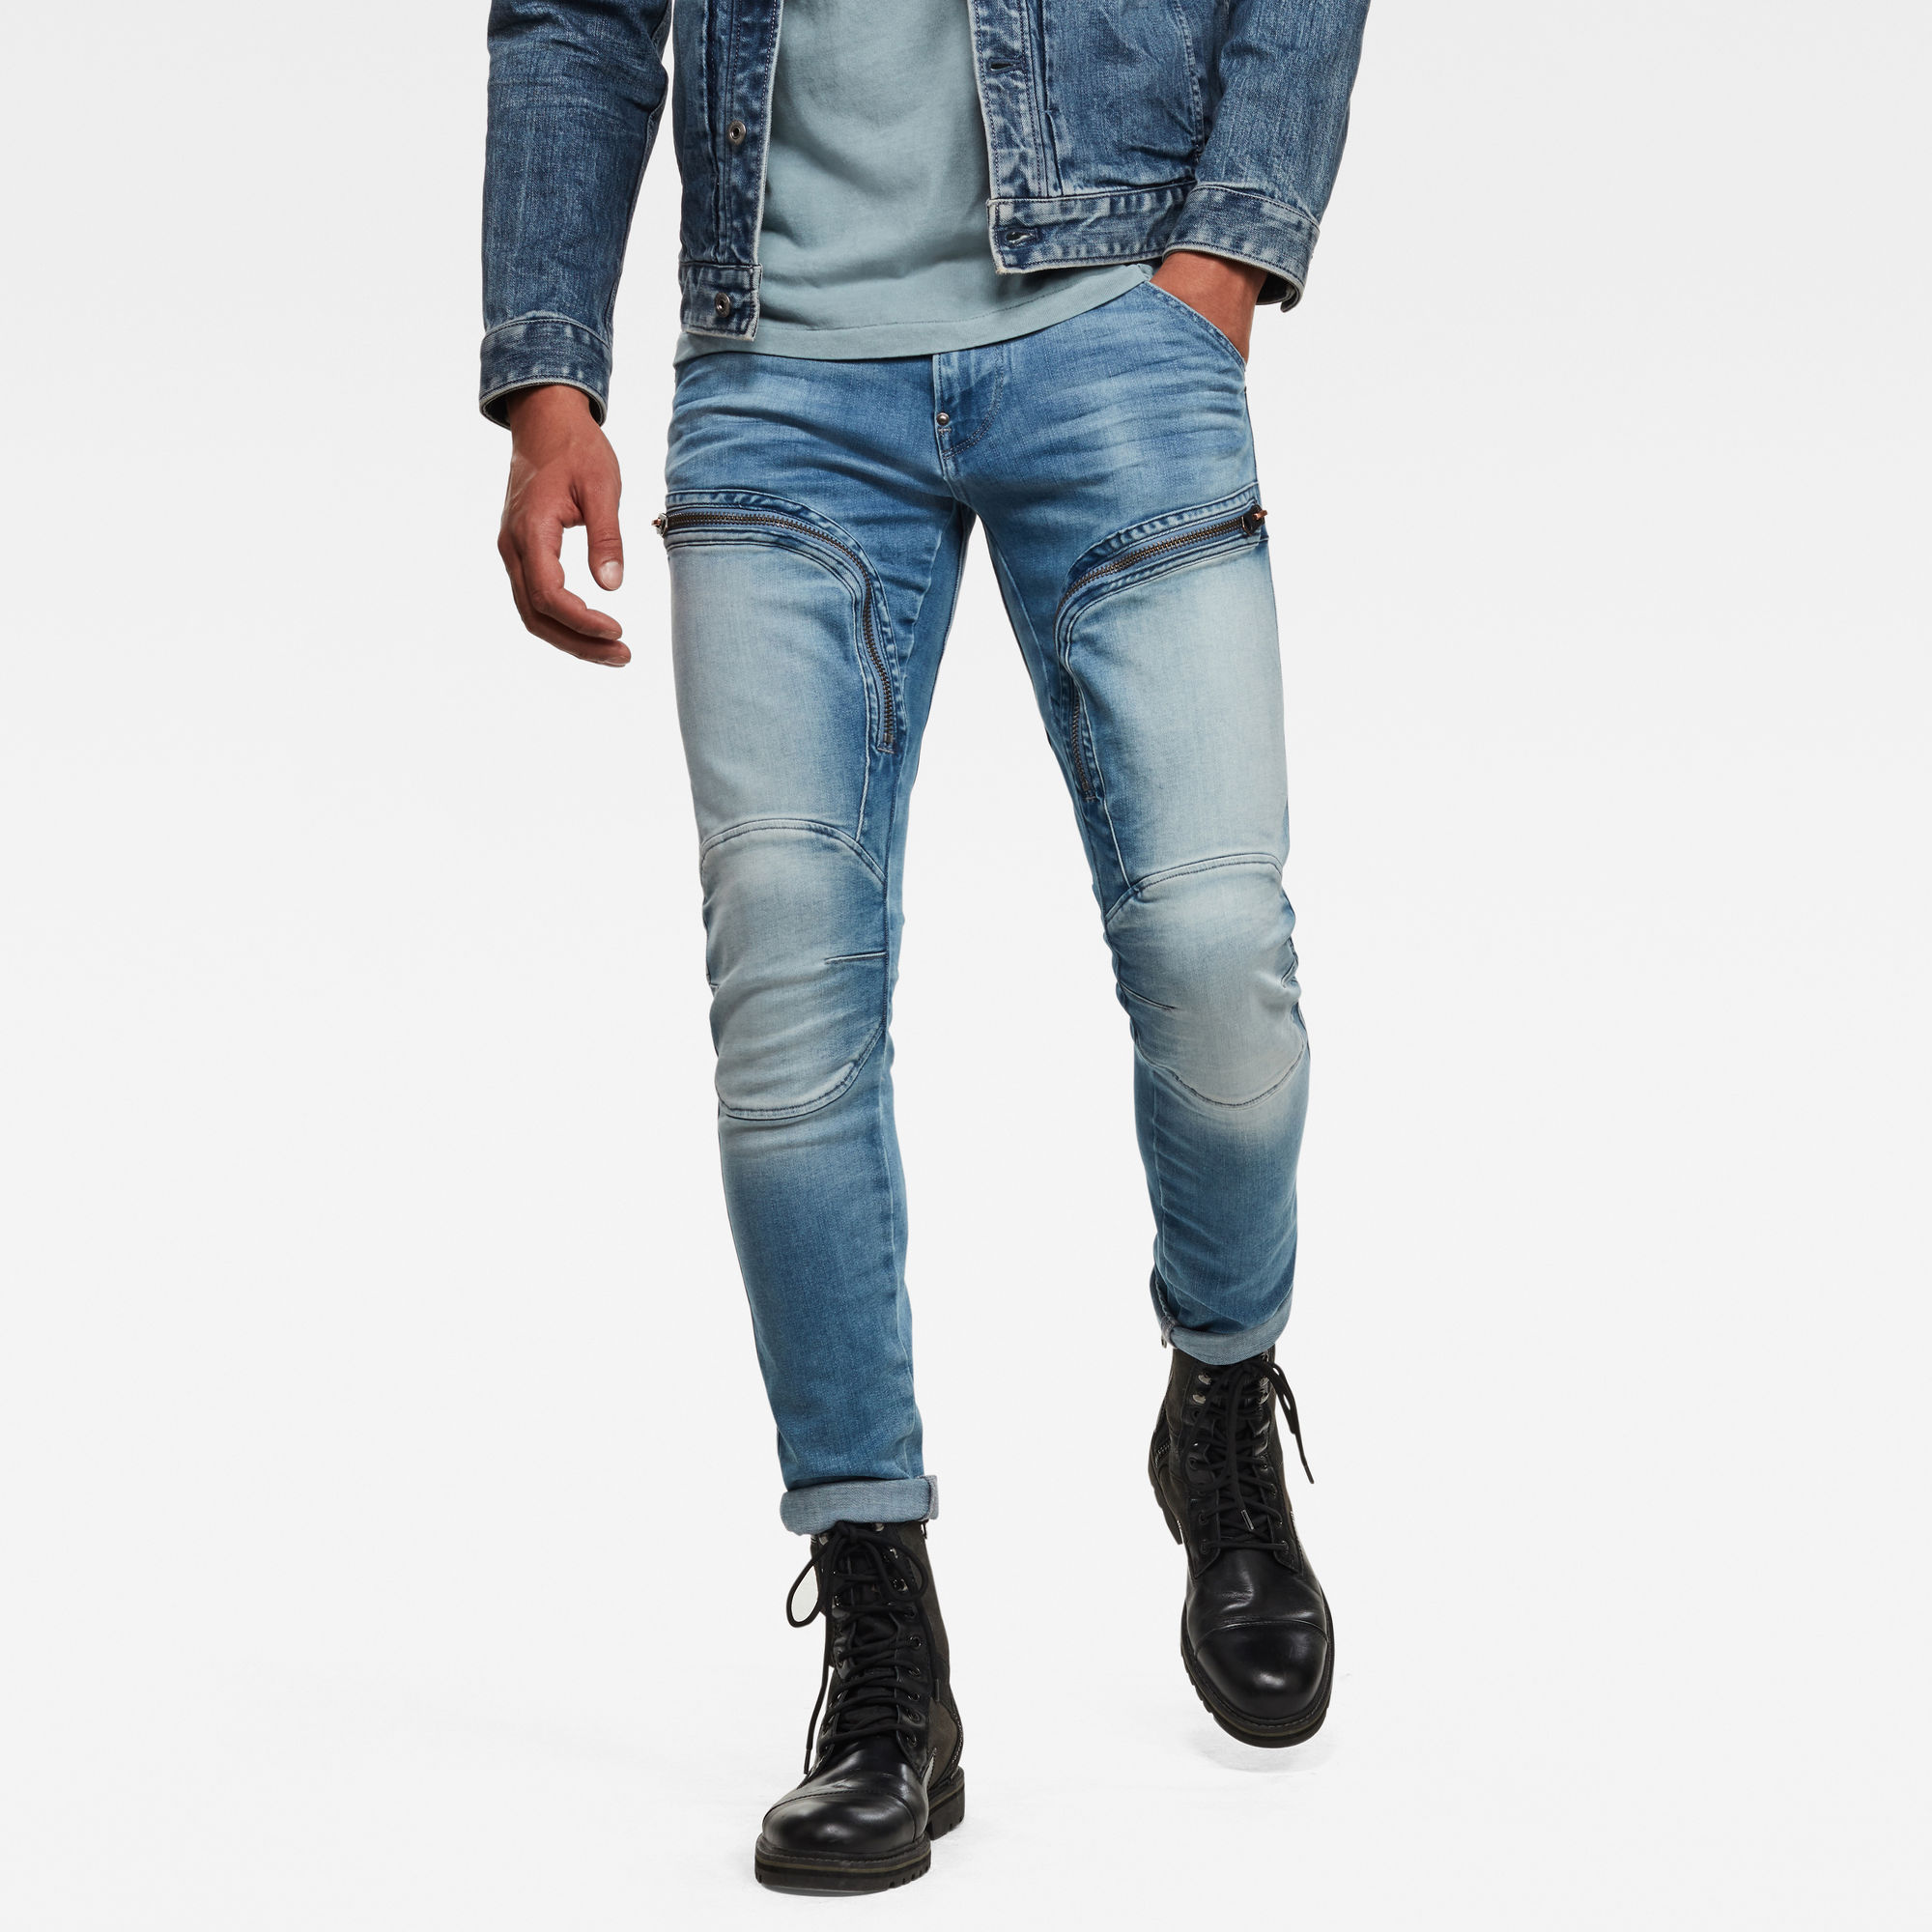 G Star RAW Heren Air Defence Zip Skinny Jeans Lichtblauw